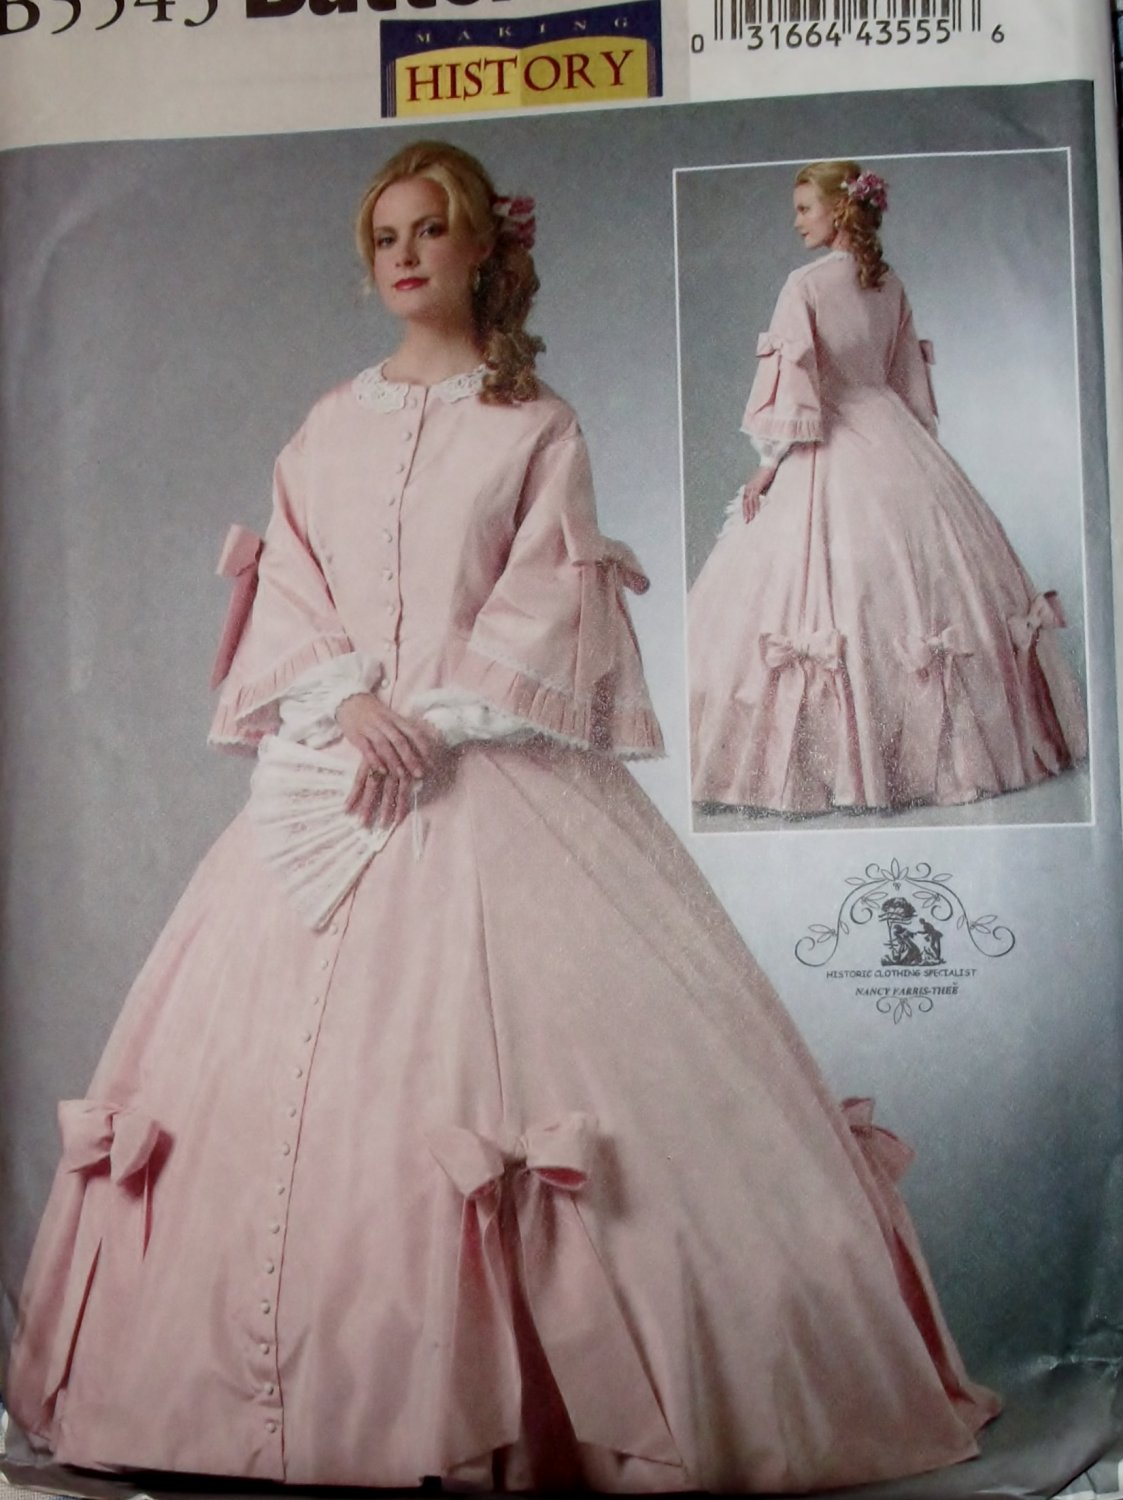 Making History Misses' Civil War Gown Costume Butterick B5543 Pattern, Size 6 to 12, Uncut